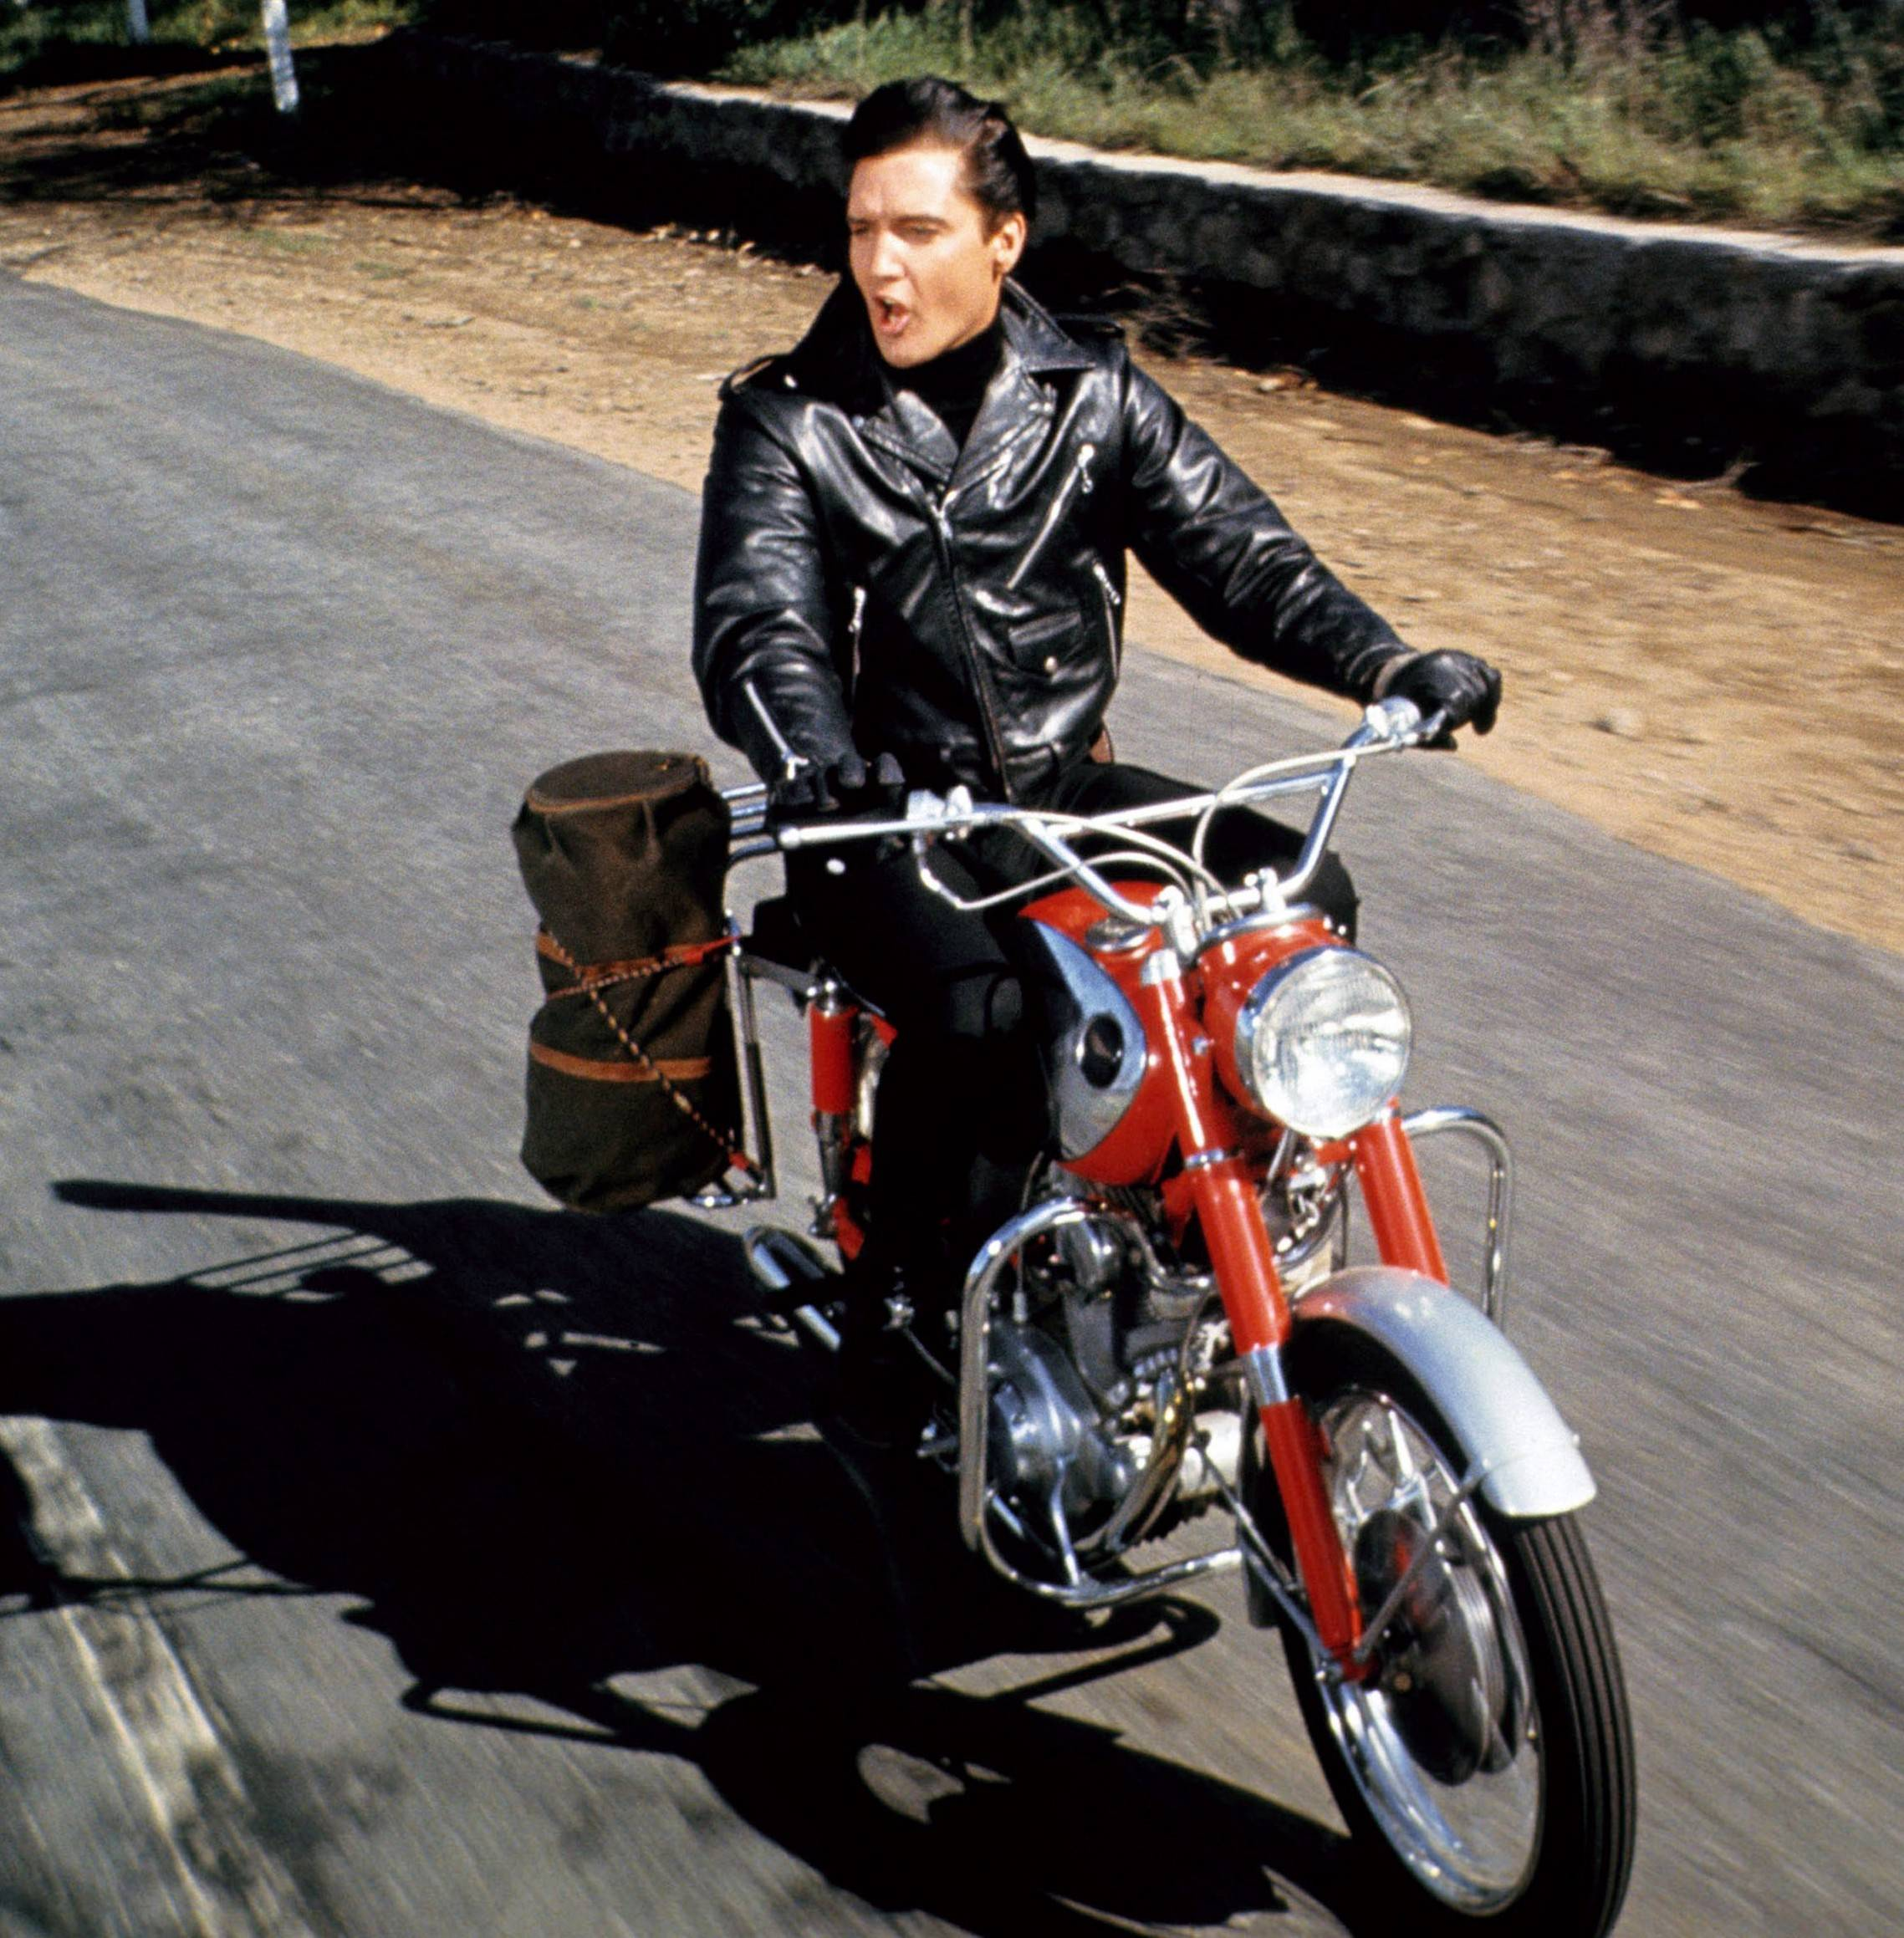 Leather Motorcycle Jacket With Armor Elvis Presley made this leather jacket cool in the 1964 movie ...